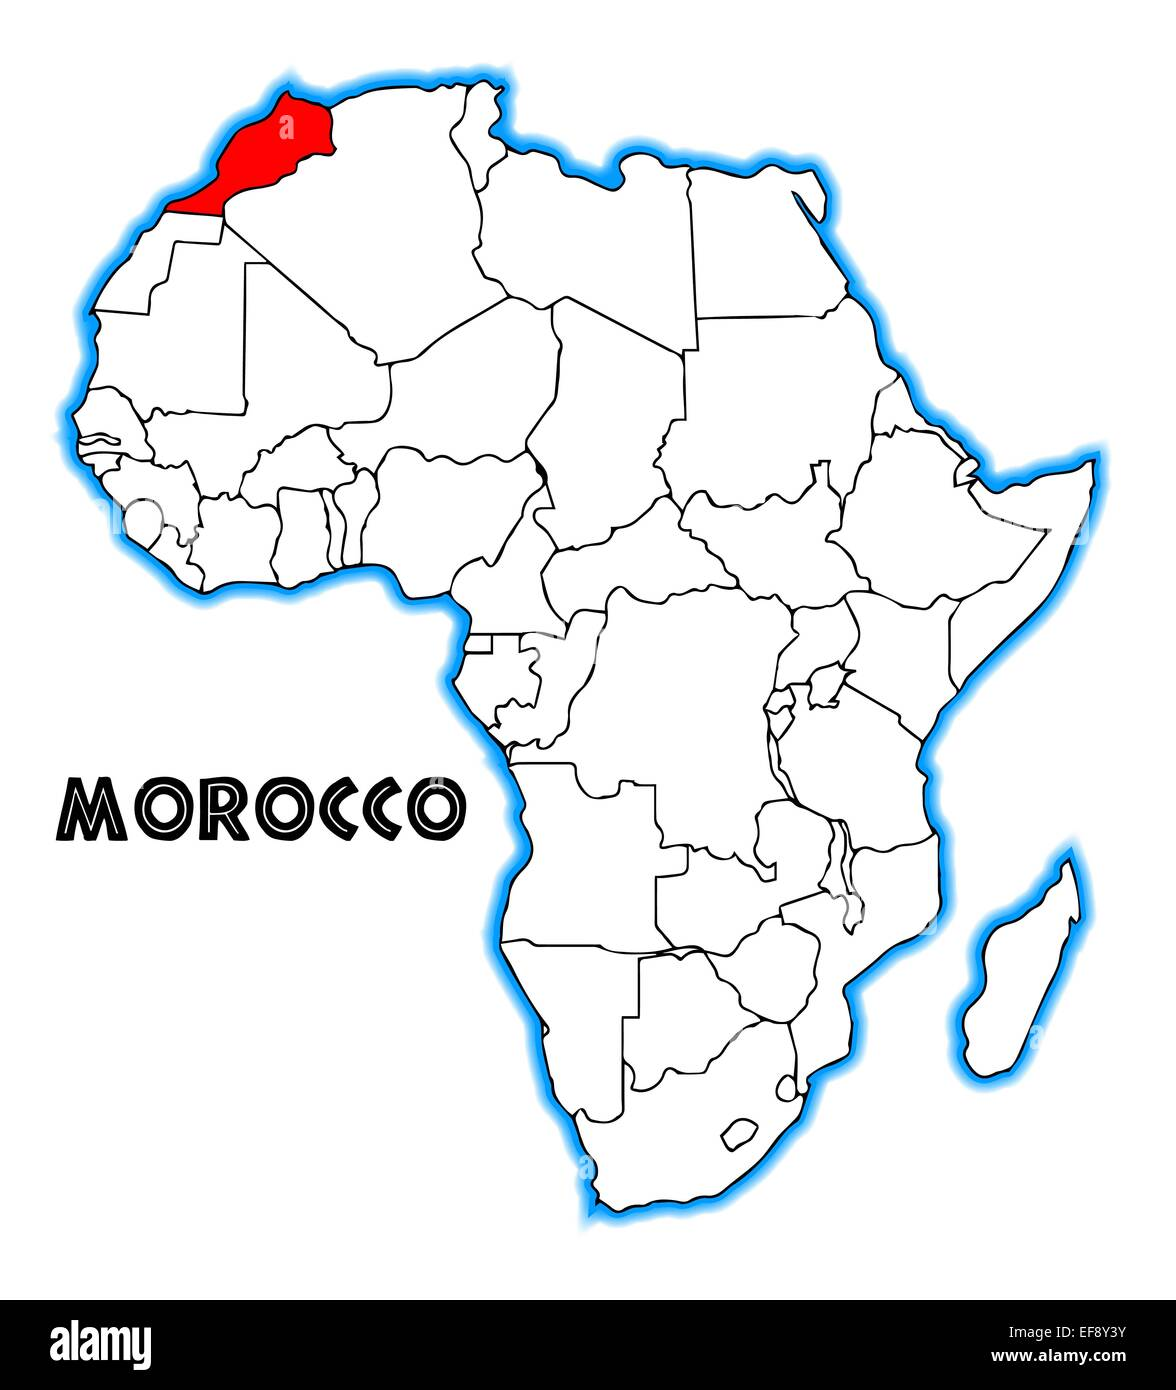 Morocco outline inset into a map of Africa over a white background